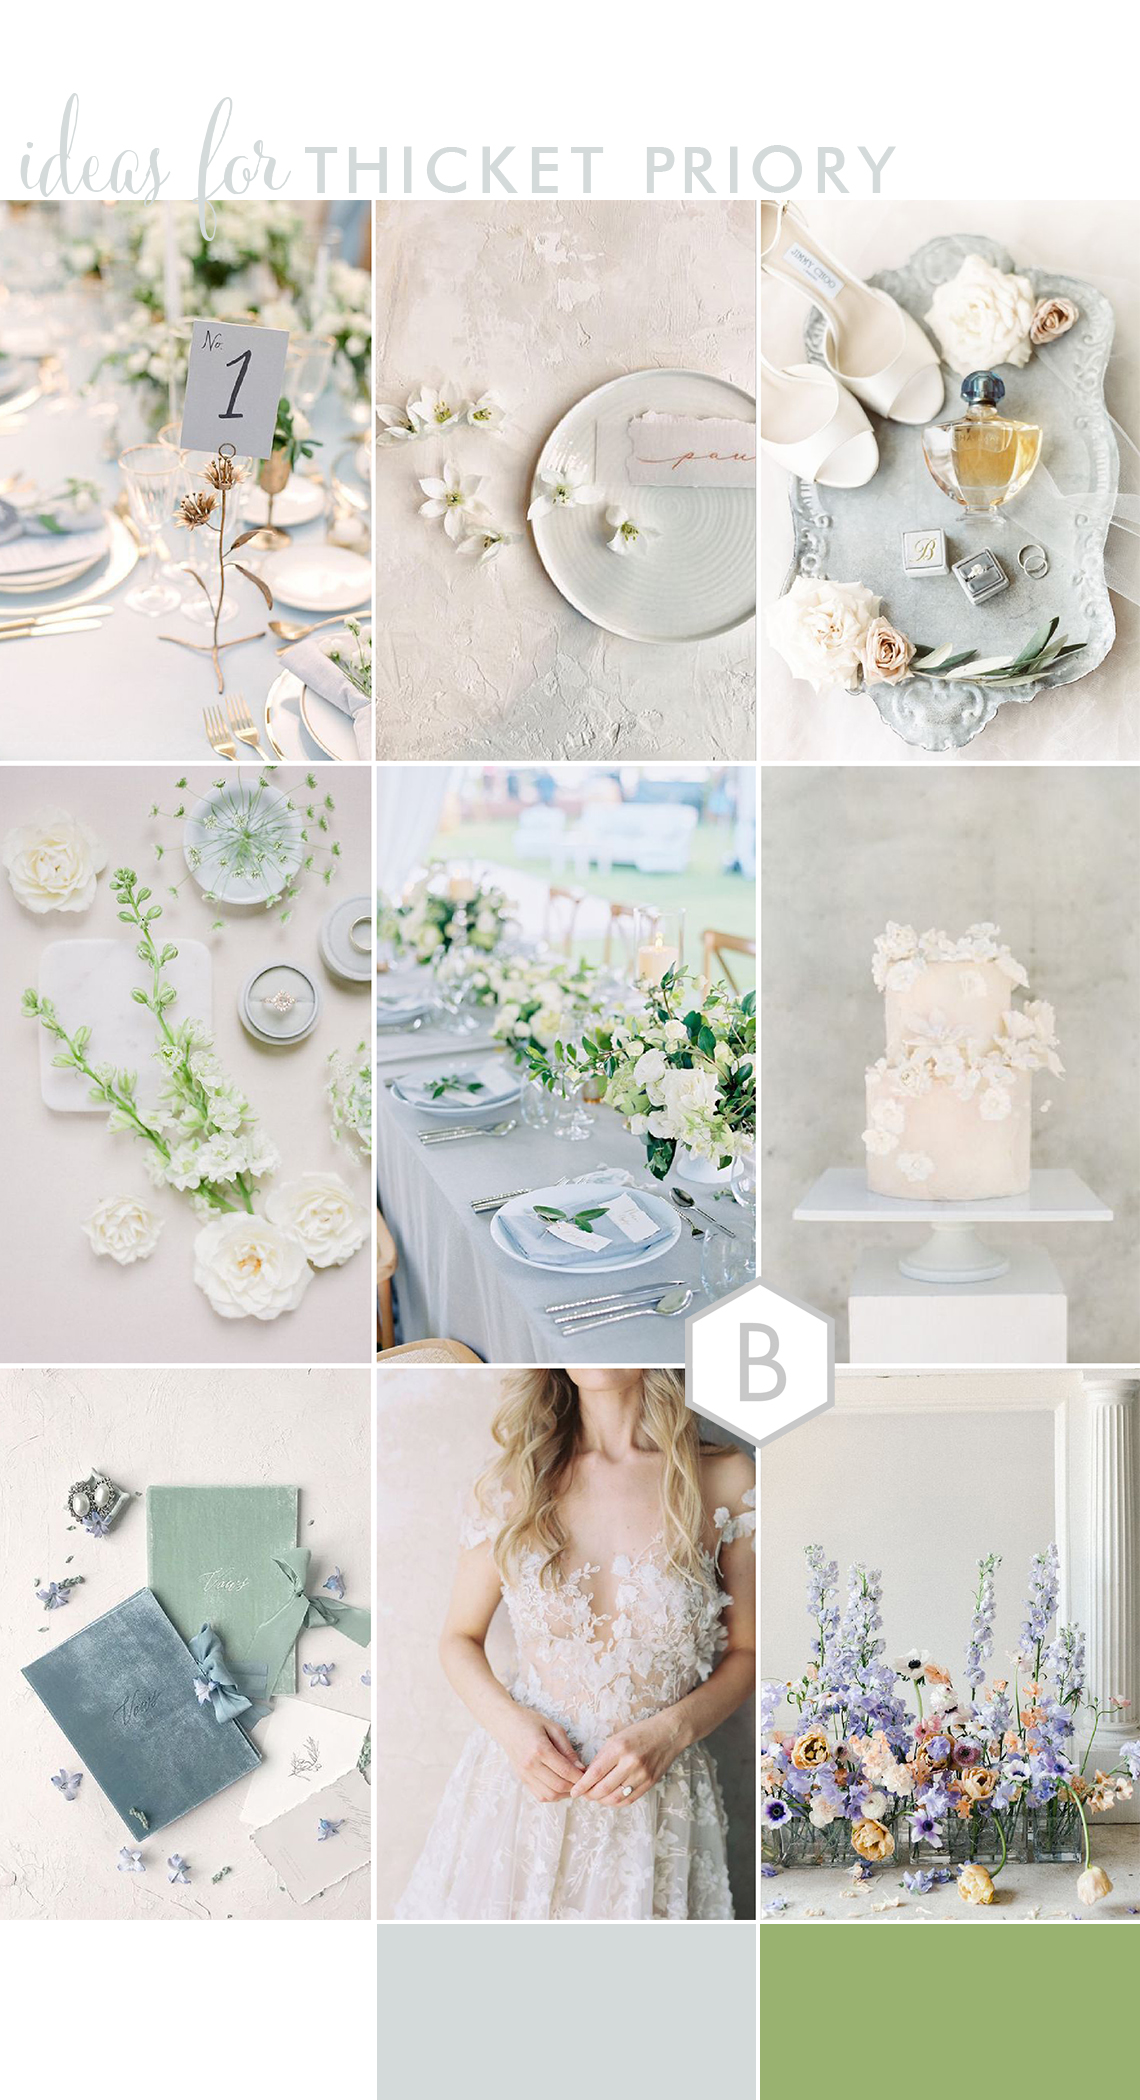 Summer wedding ideas for Thicket Priory in blue and white